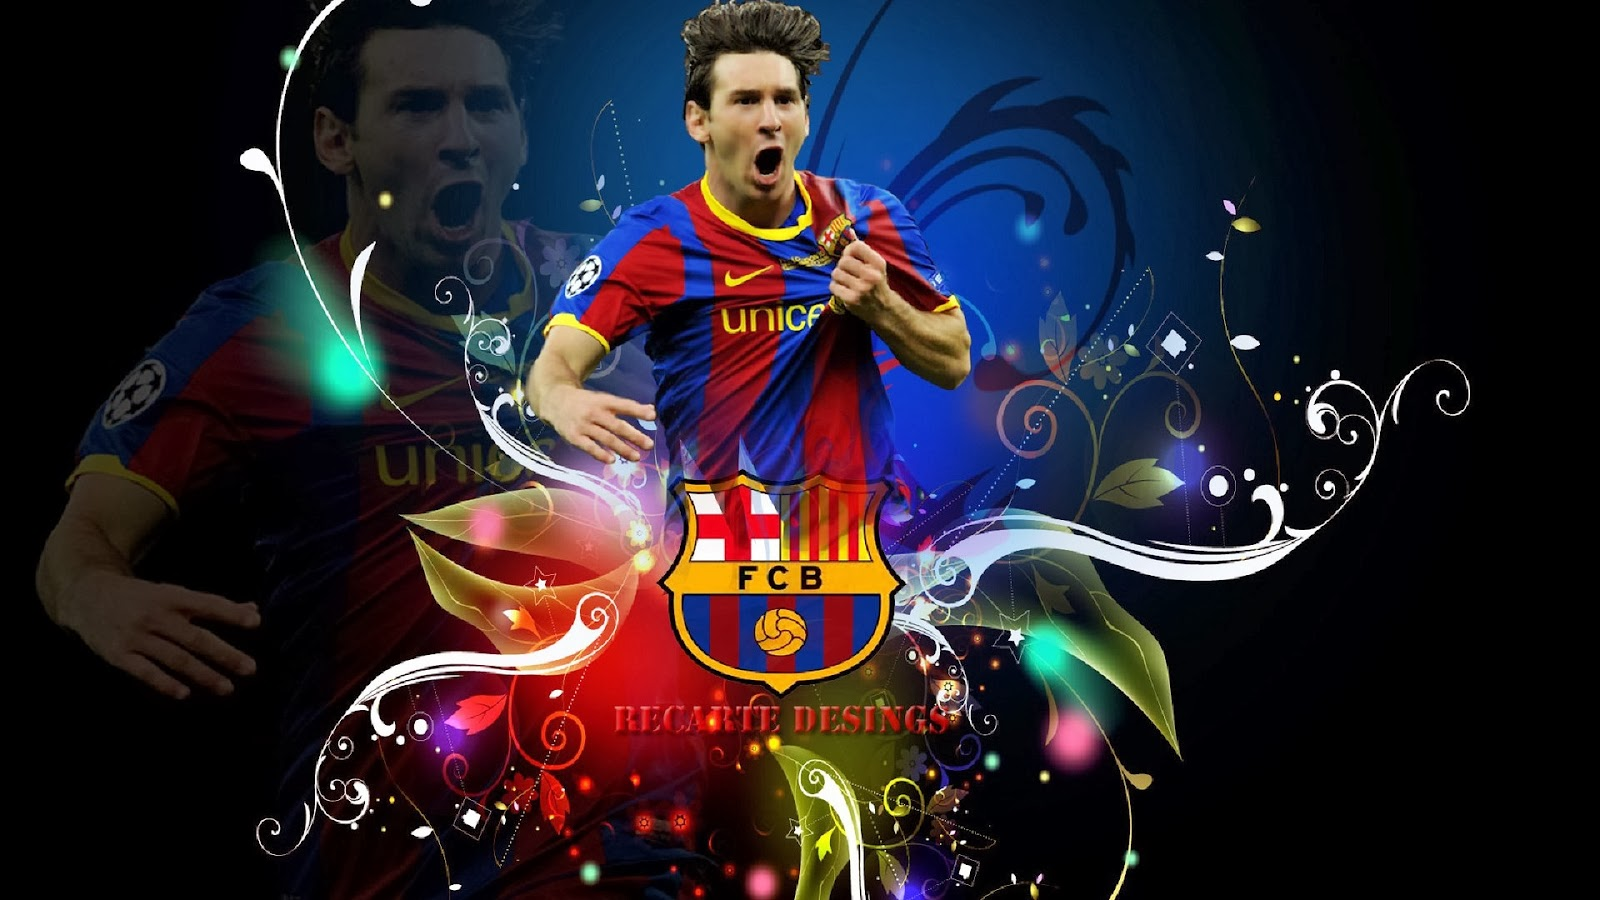 Messi wallpaper pictures hd wallpapers hd backgrounds - Mobles vintage barcelona ...